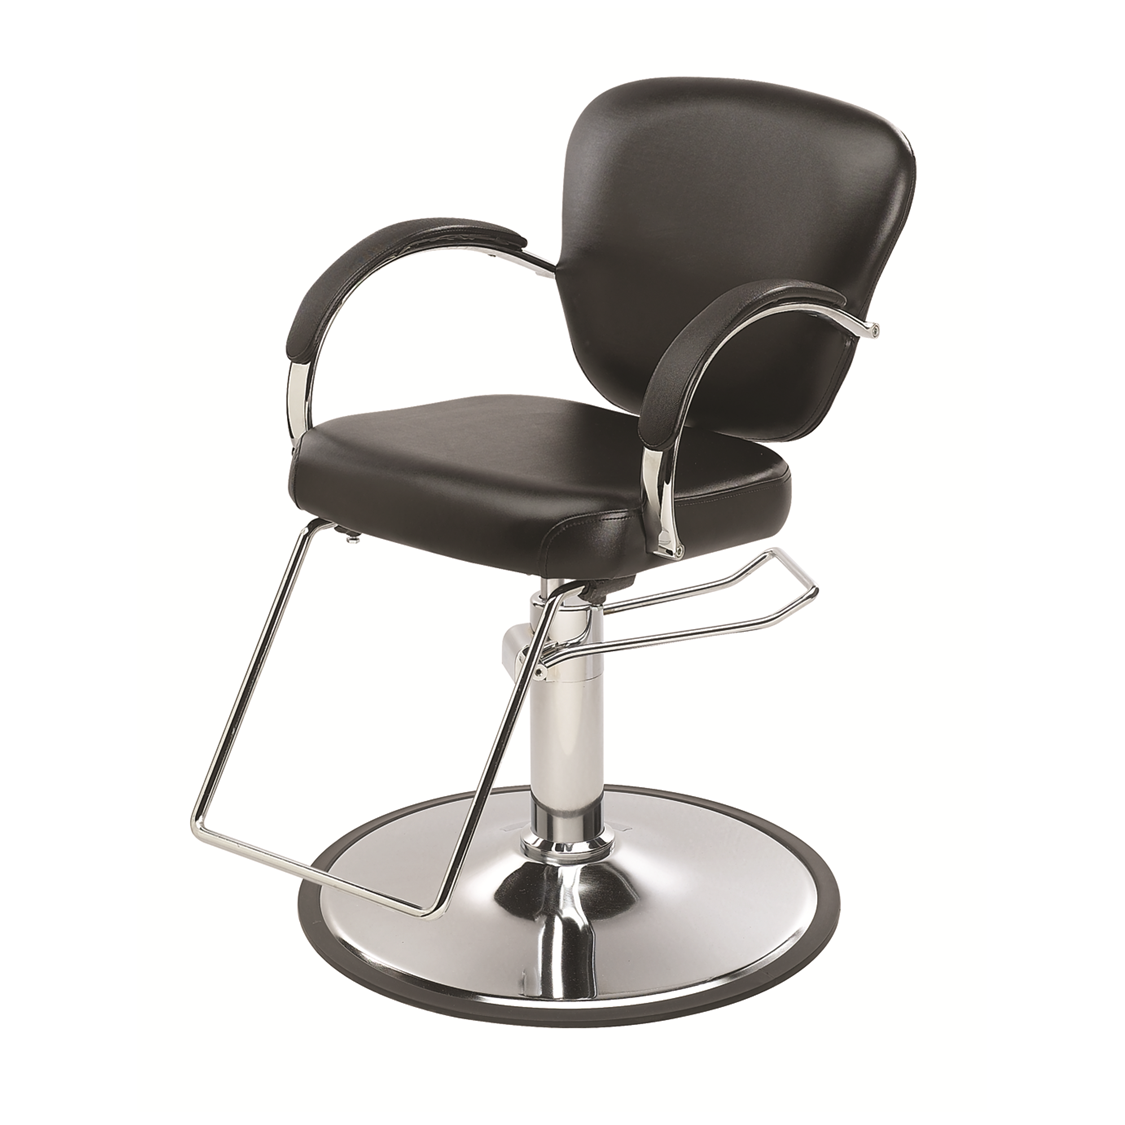 Garfield 9001 Madison Styling Chair